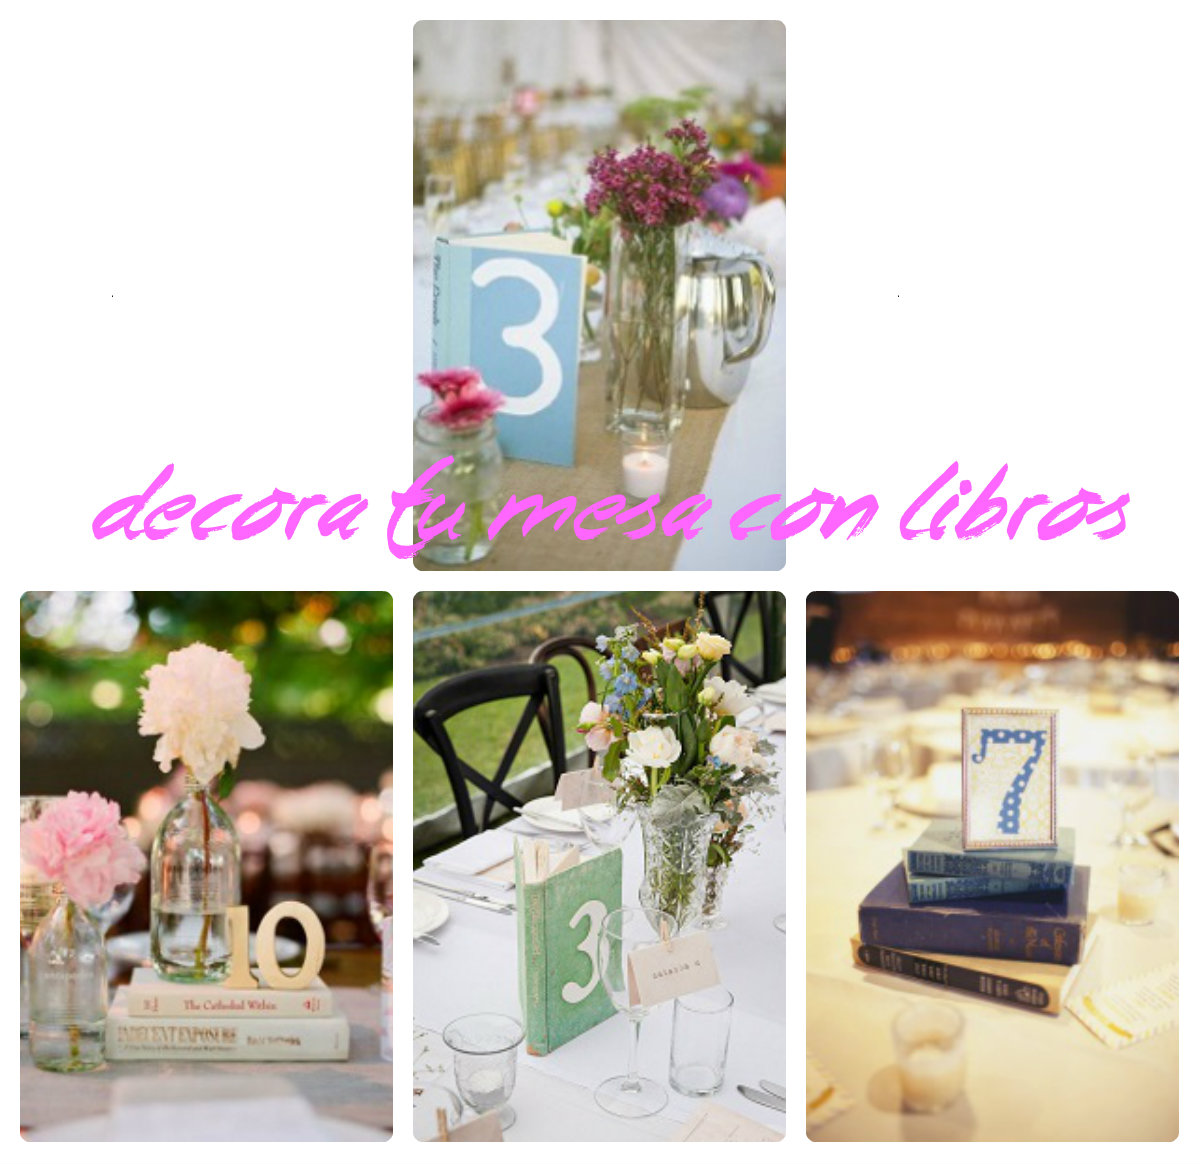 Decoracion en bombas para primera comunion de nio for Decoracion con libros